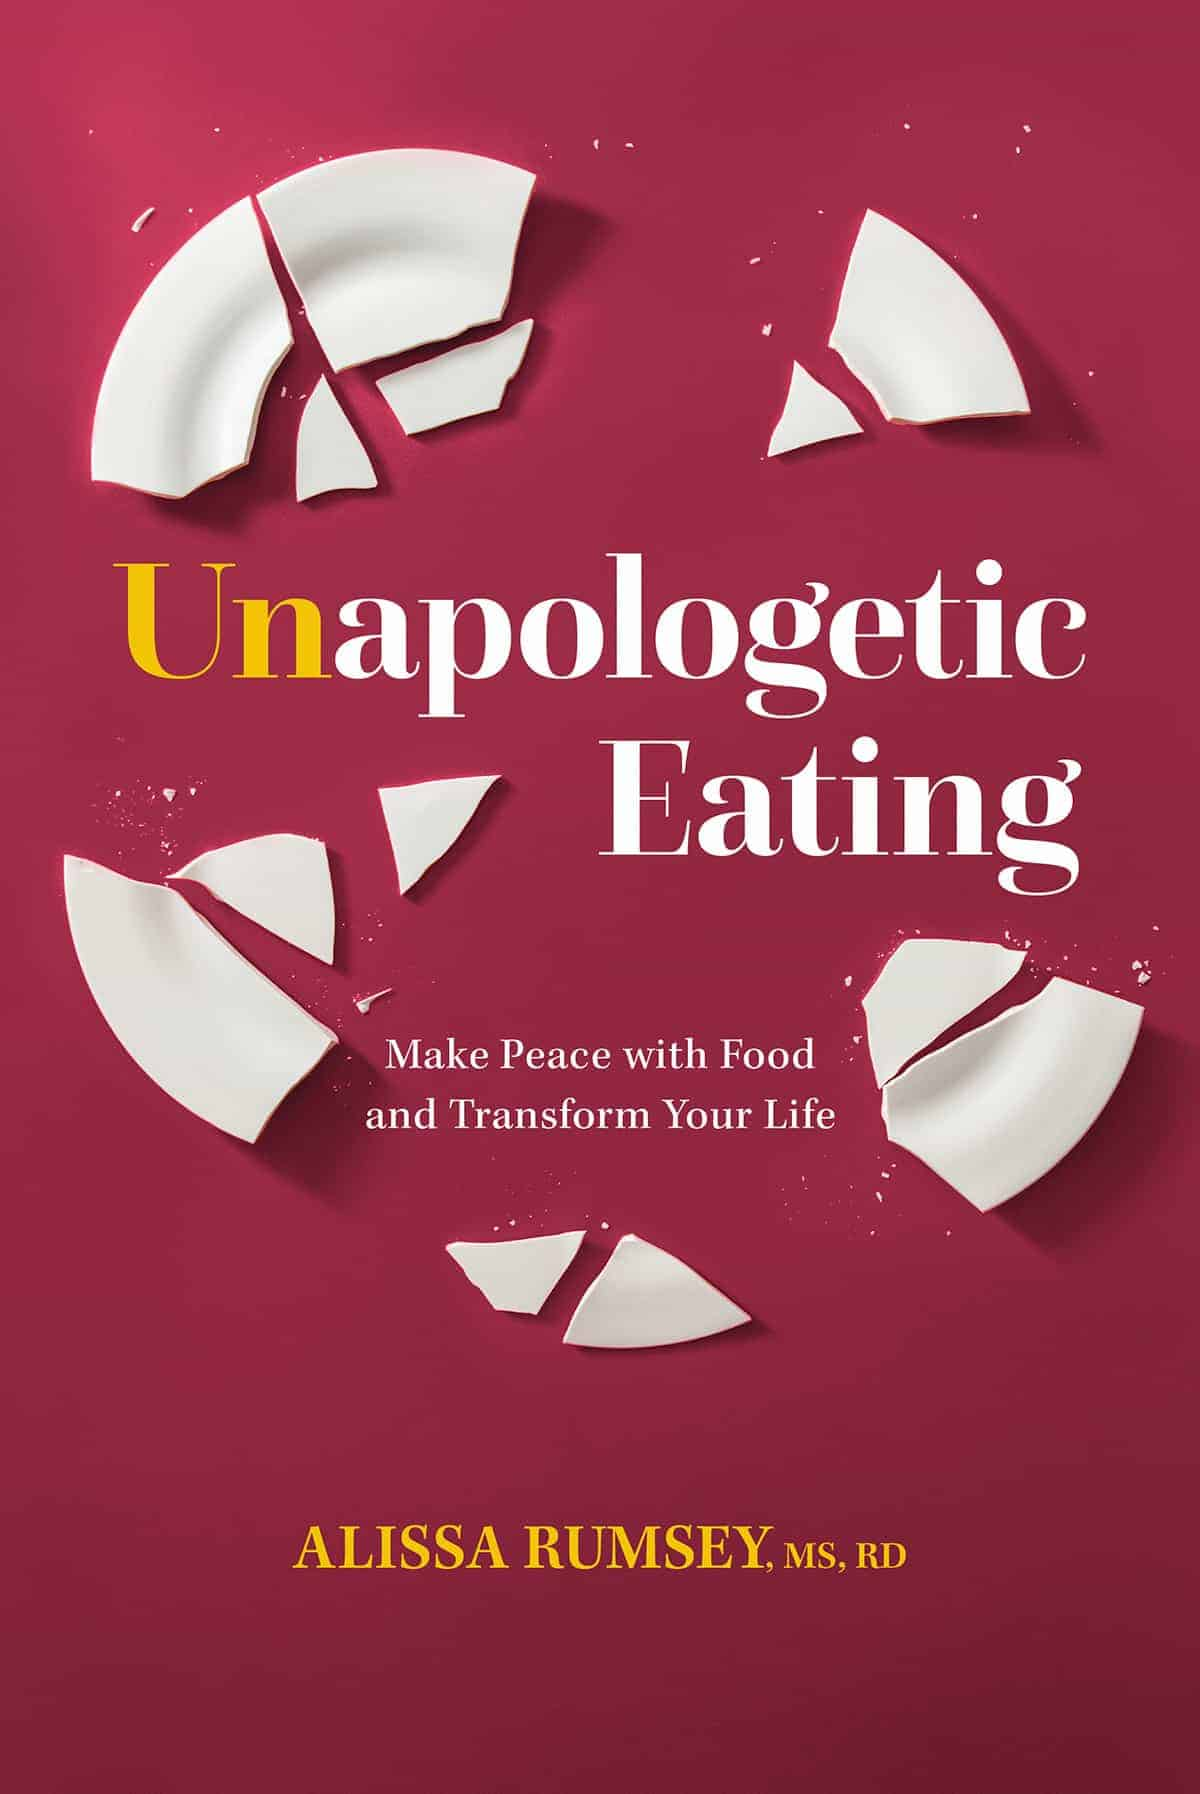 Unapologetic-Eating-cover